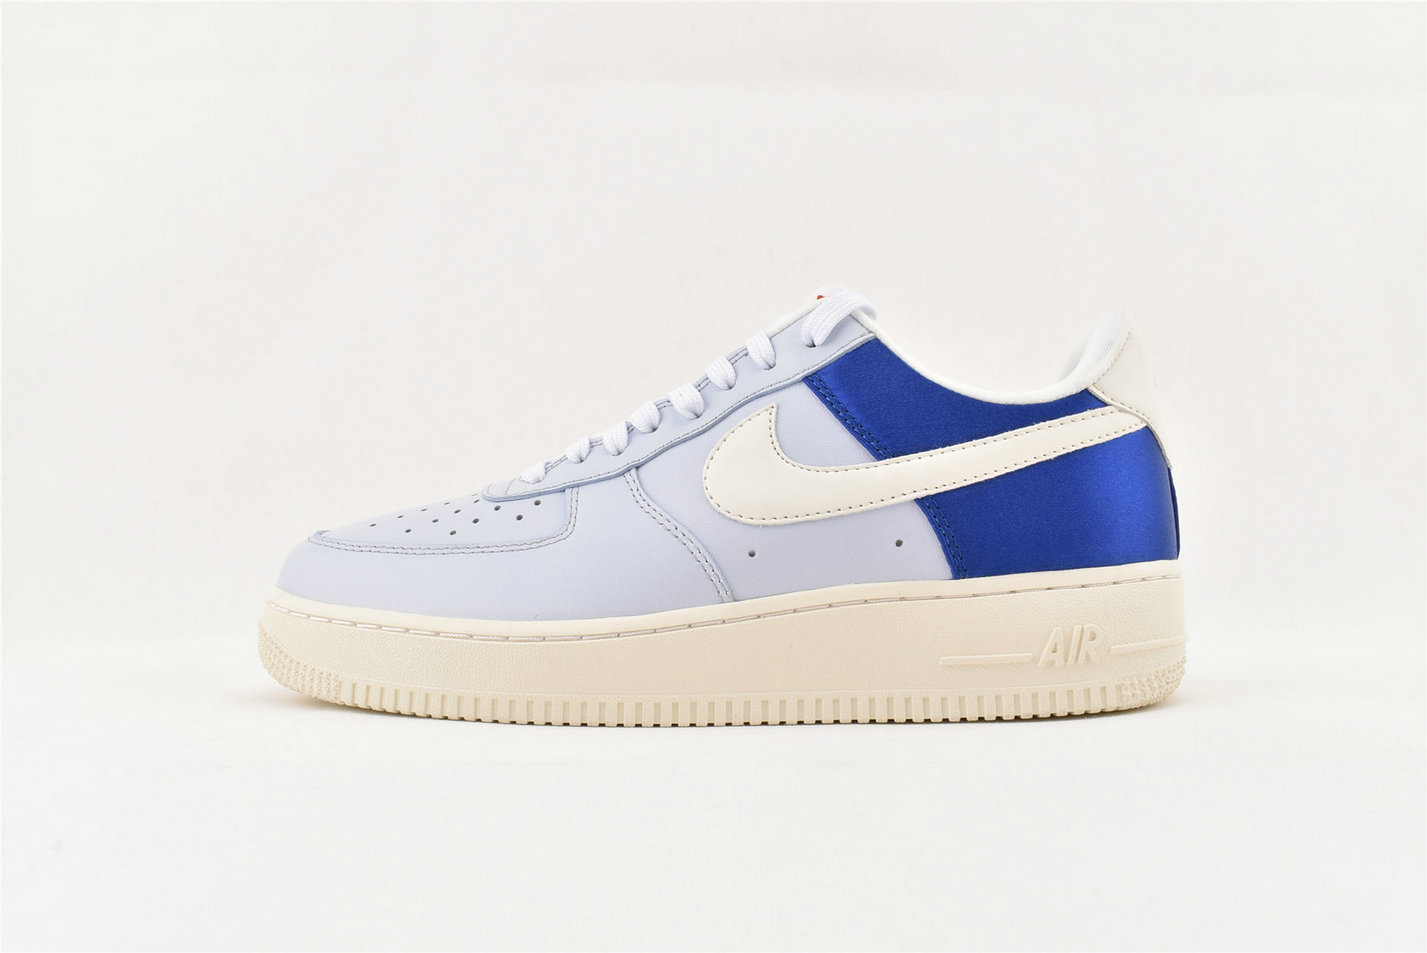 Where To Buy Wholesale Cheap Nike Air Force 1 City Pride Toronto AH8462-401 - www.wholesaleflyknit.com